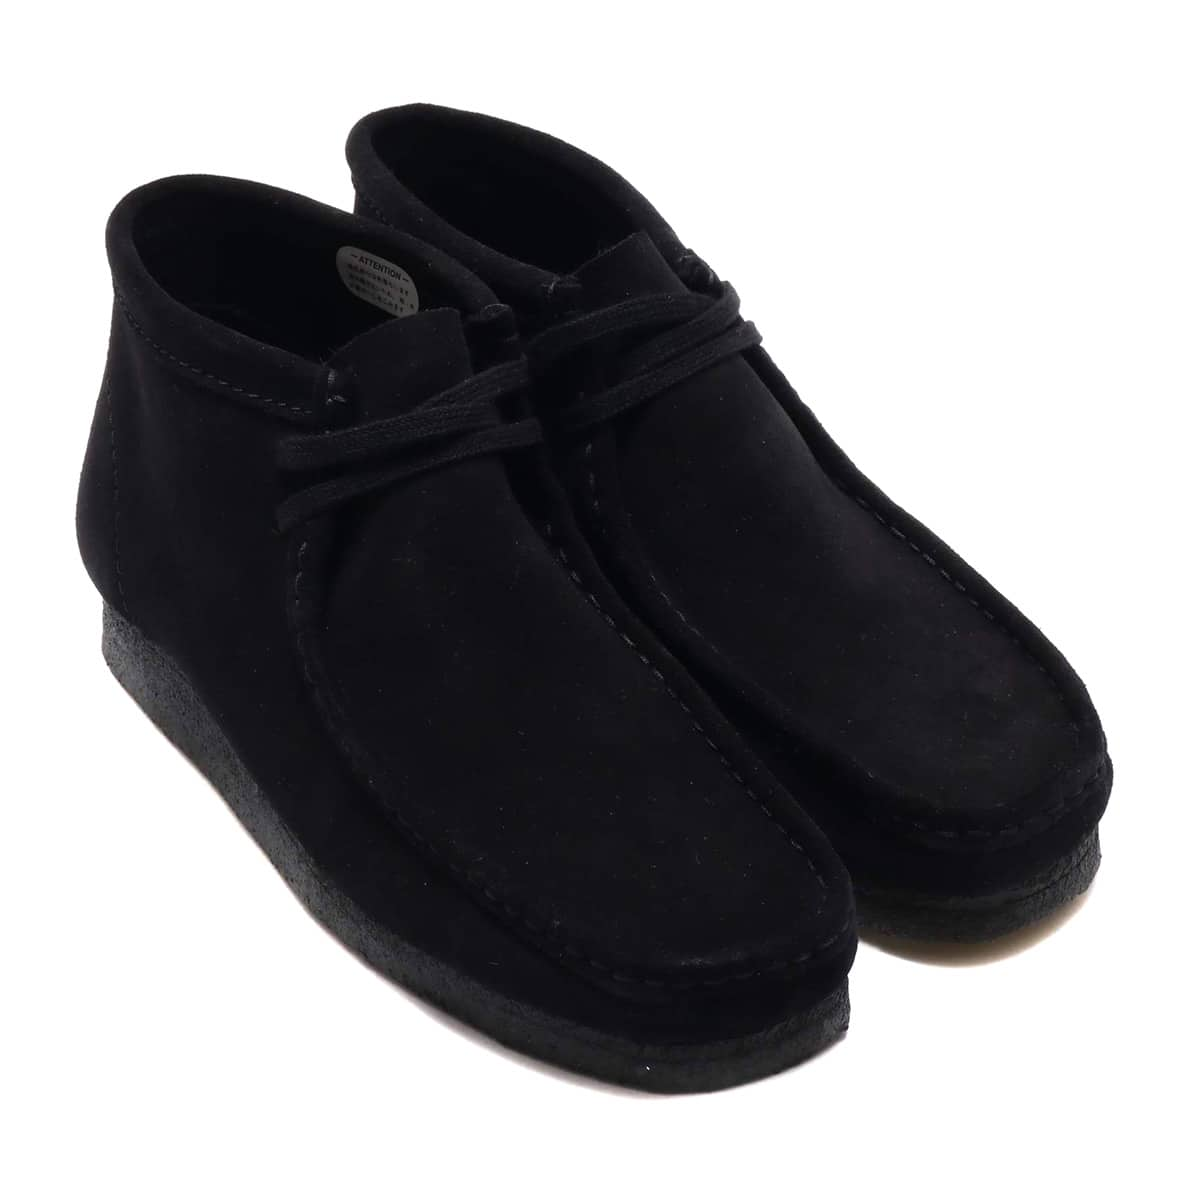 Clarks Wallabee Boot  Black Suede 18FW-I_photo_large